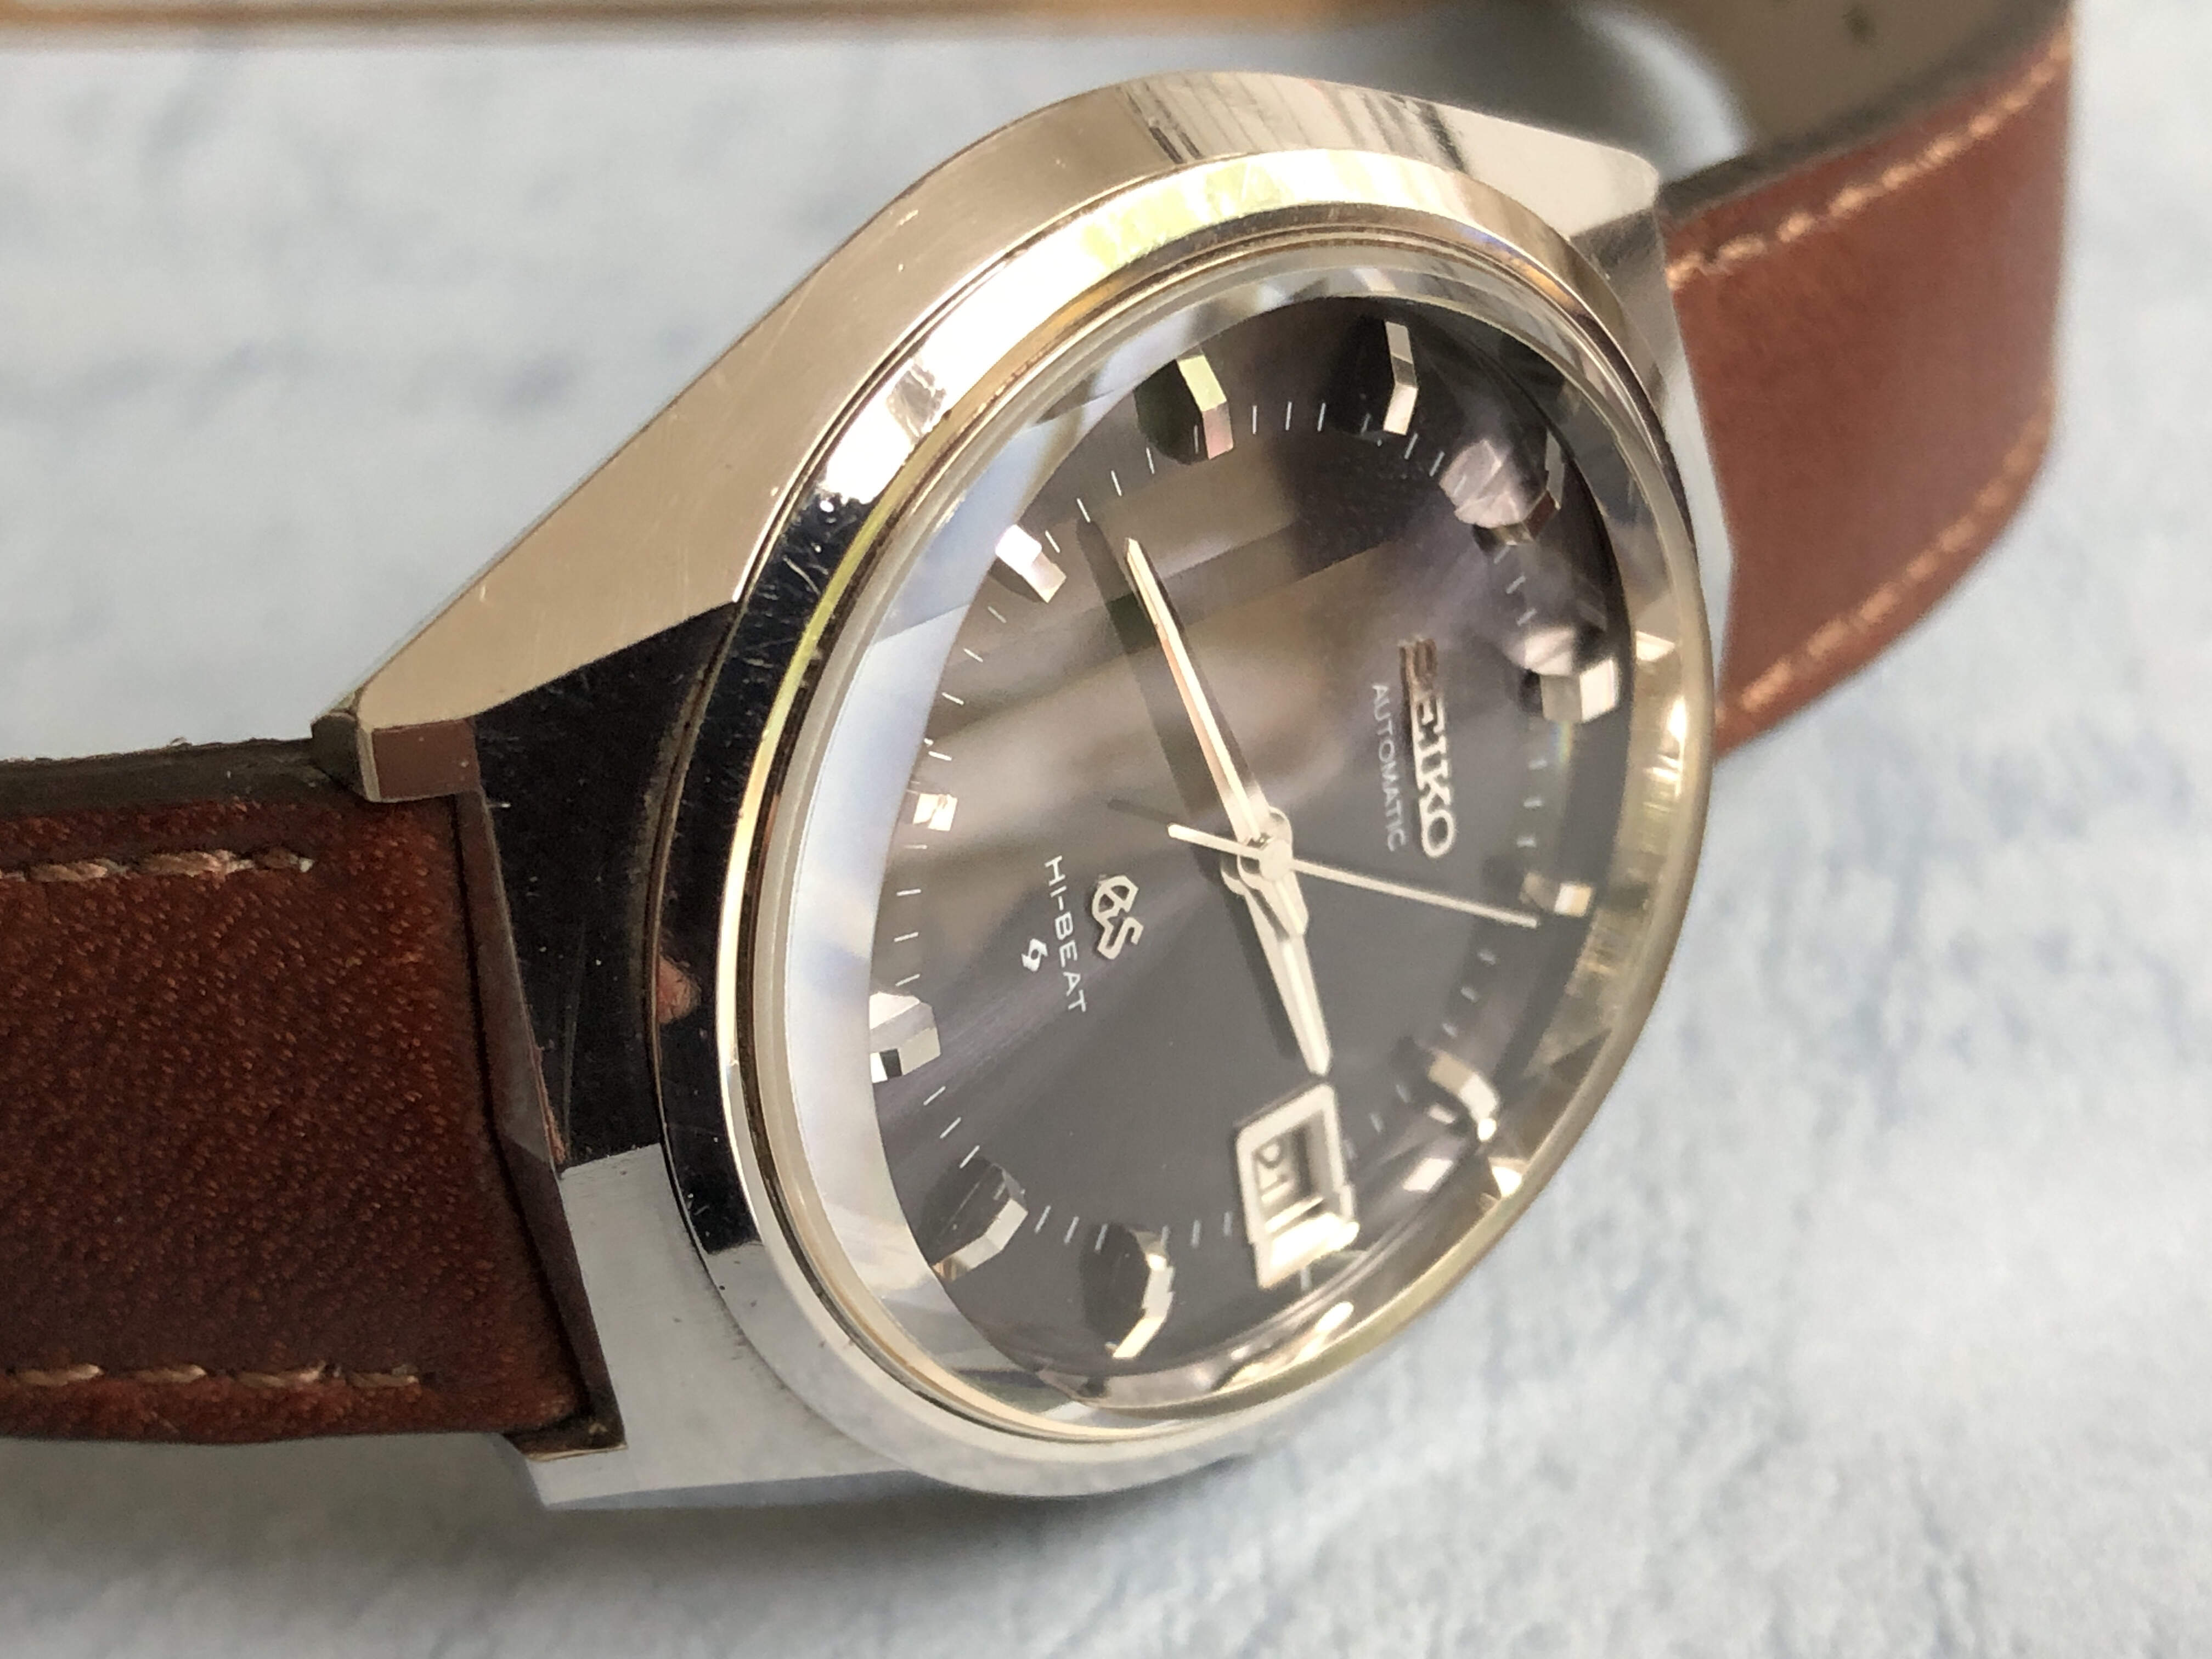 Grand Seiko 6145-8050 with GS buckle (Sold)